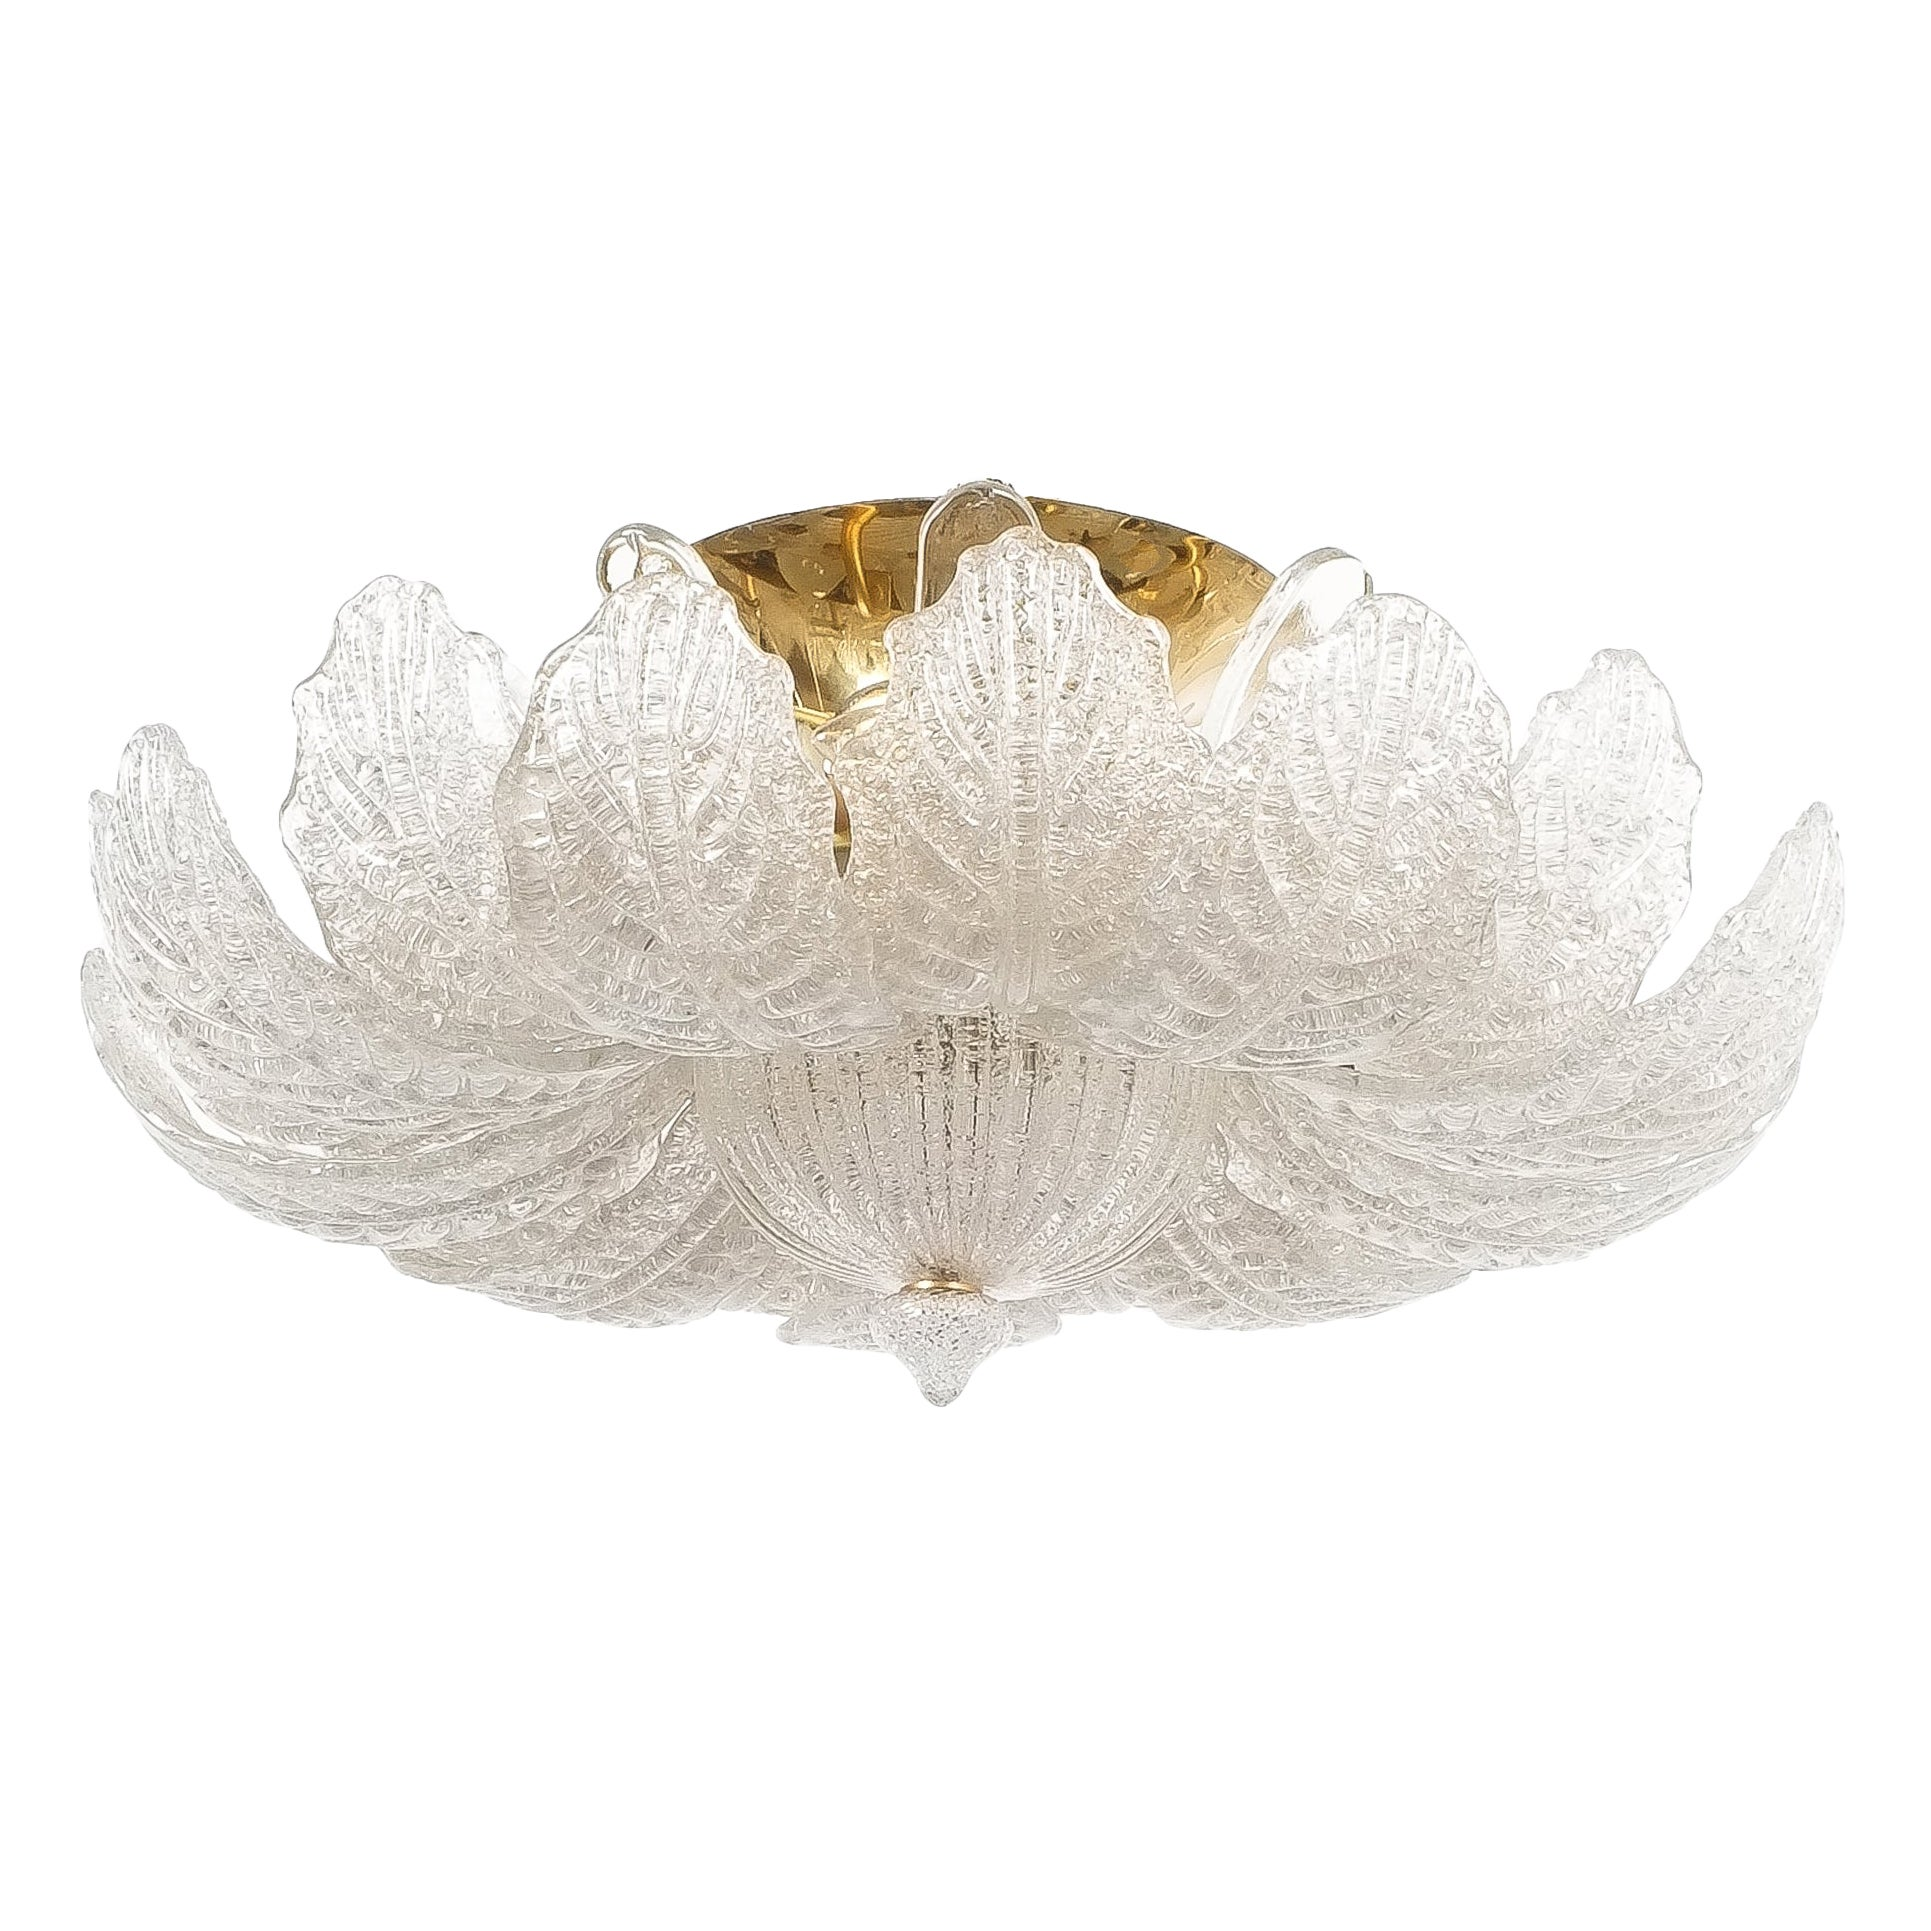 Labelled Barovier Toso Flush Mount or Chandelier Glass Brass, Italy Midcentury